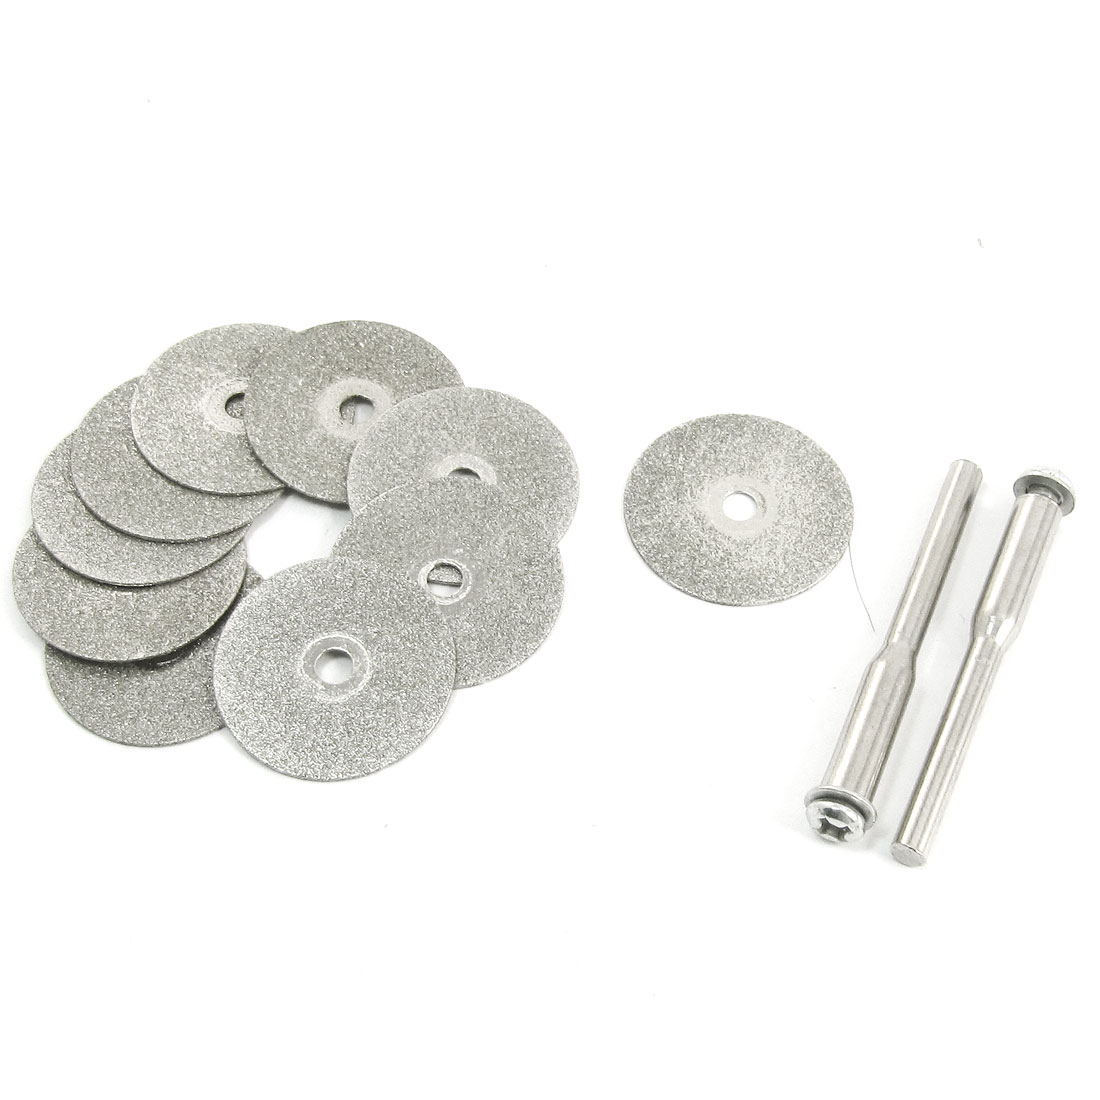 10PCS 20x1mm Aluminum Resin Bond Diamond Coated Grinding Wheel Gray w Drill Bits